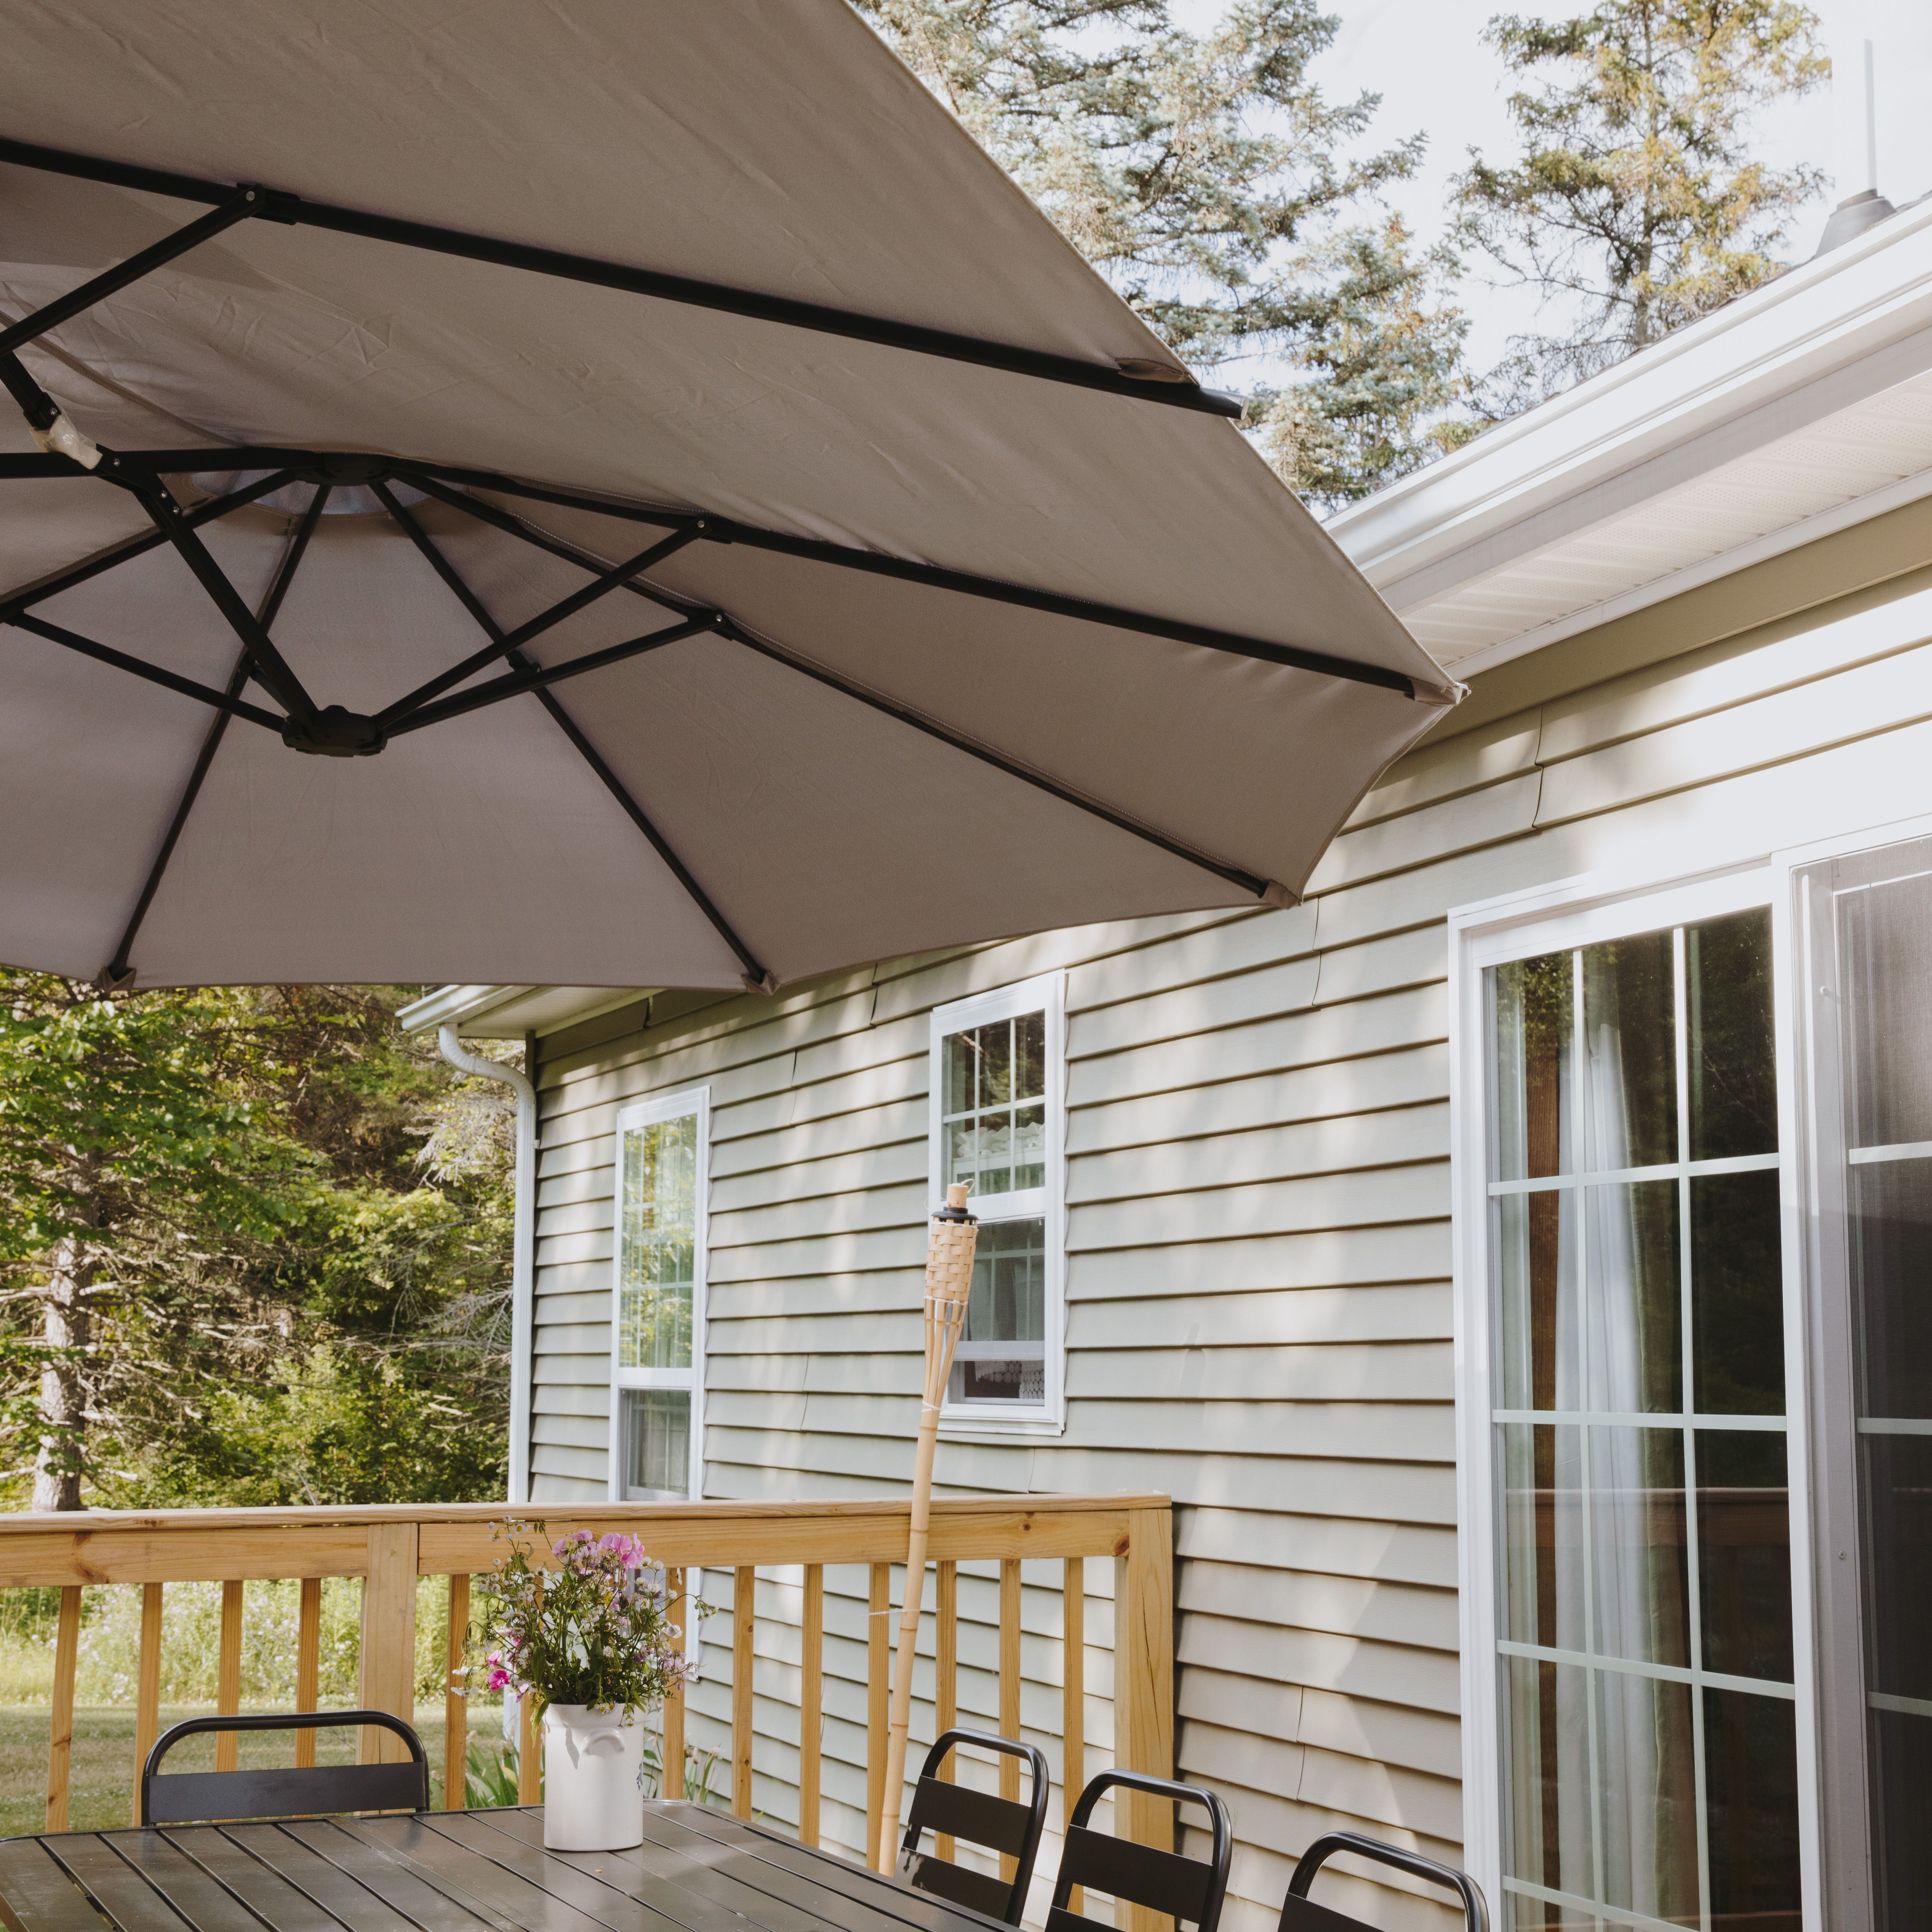 What To Look For In An Outdoor Patio Umbrella